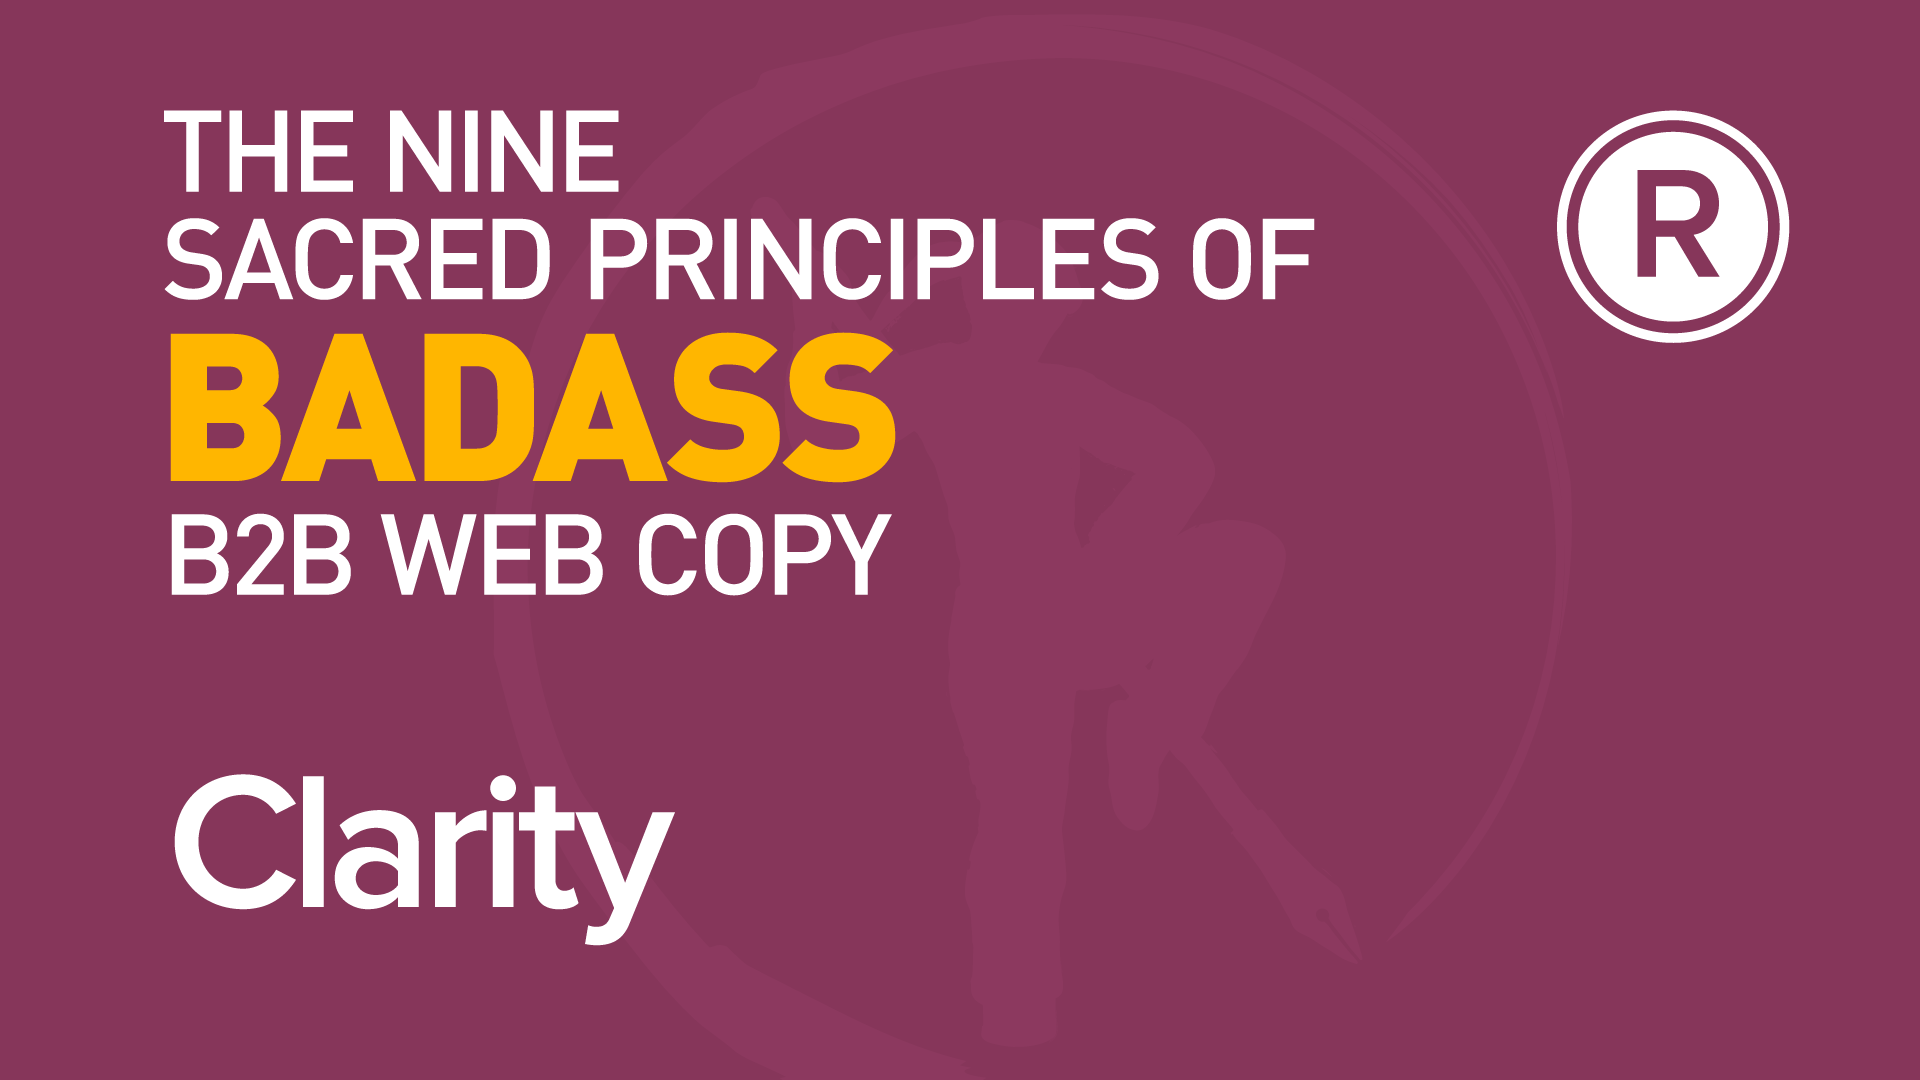 1st principle of badass B2B web copy: Clarity